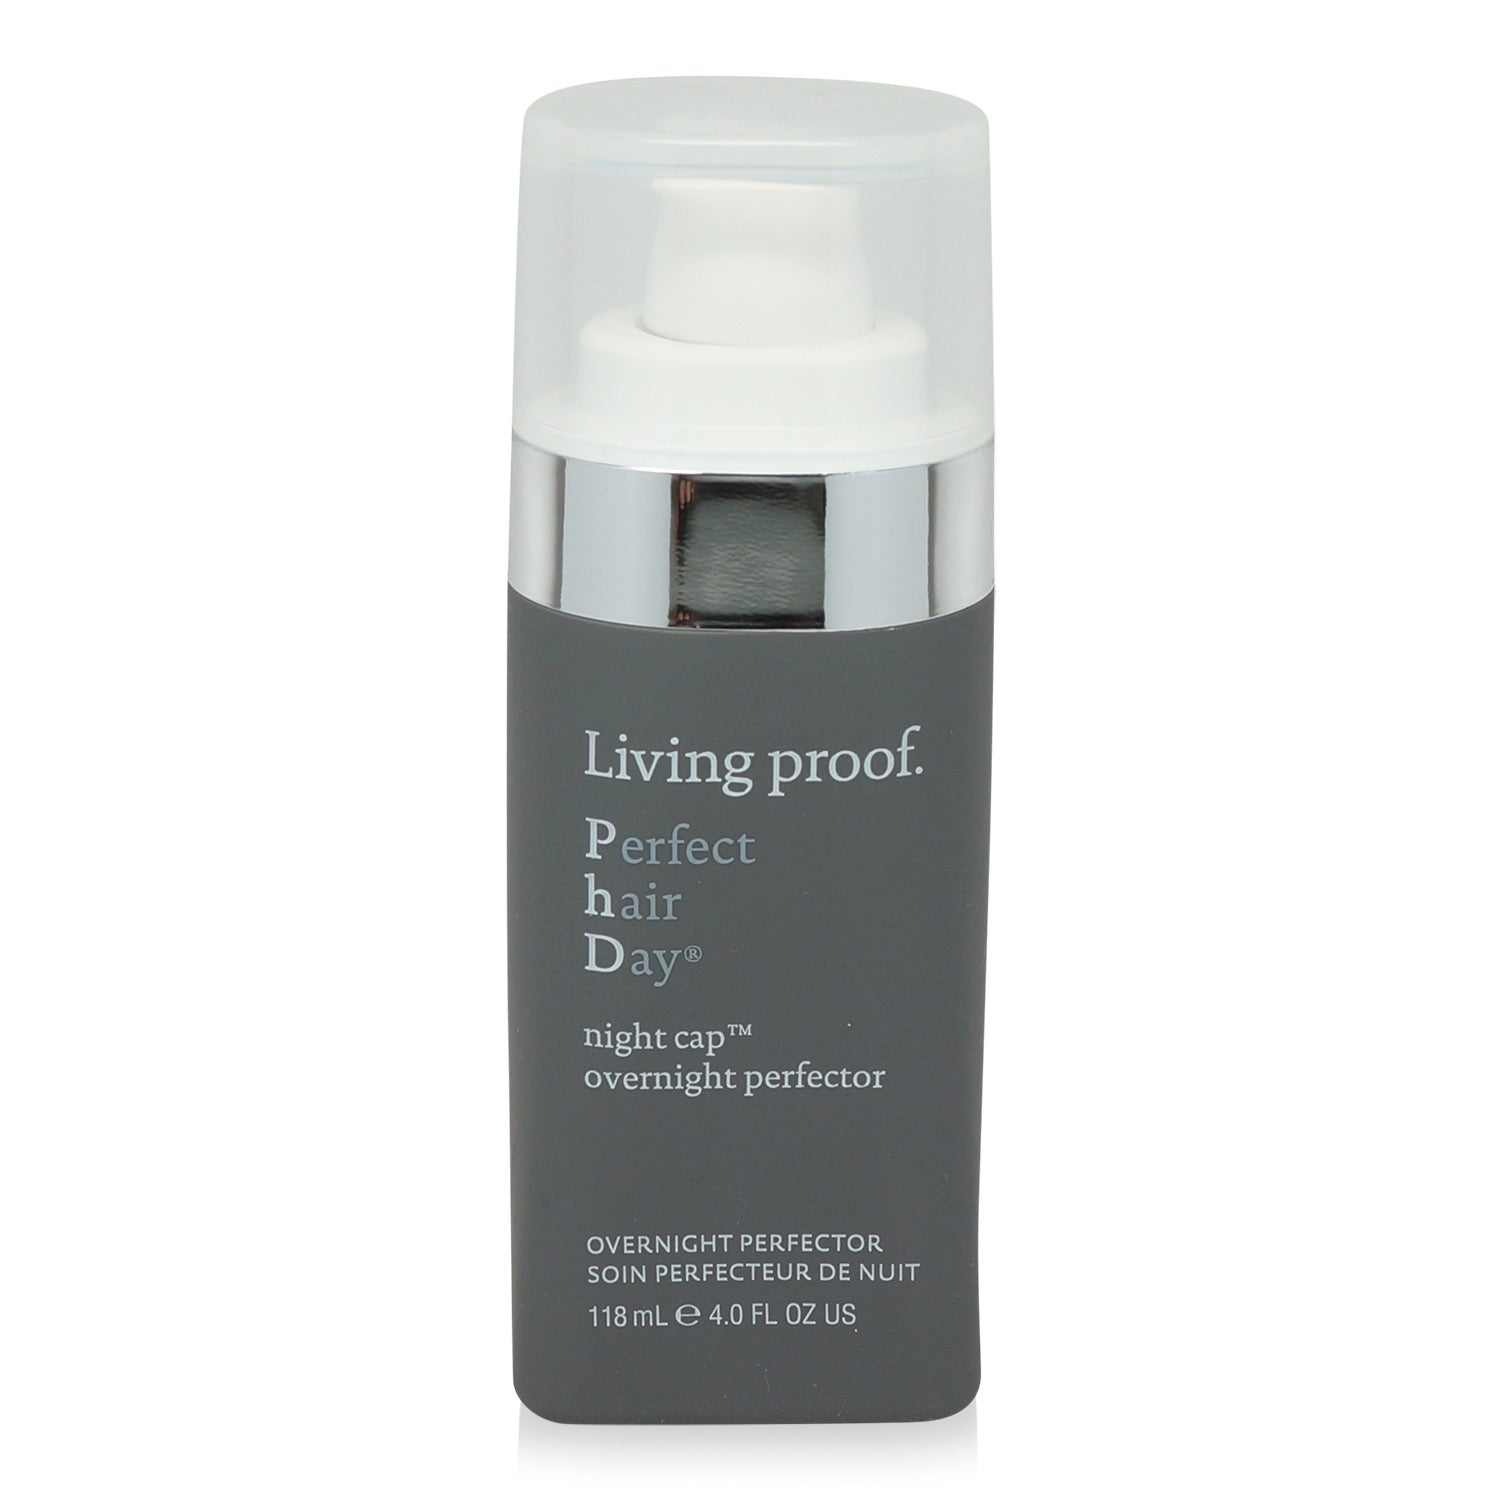 LIVING PROOF ~ PERFECT HAIR DAY (PHD) ~ NIGHT CAP OVERNIGHT PERFECTOR ~ 4 OZ